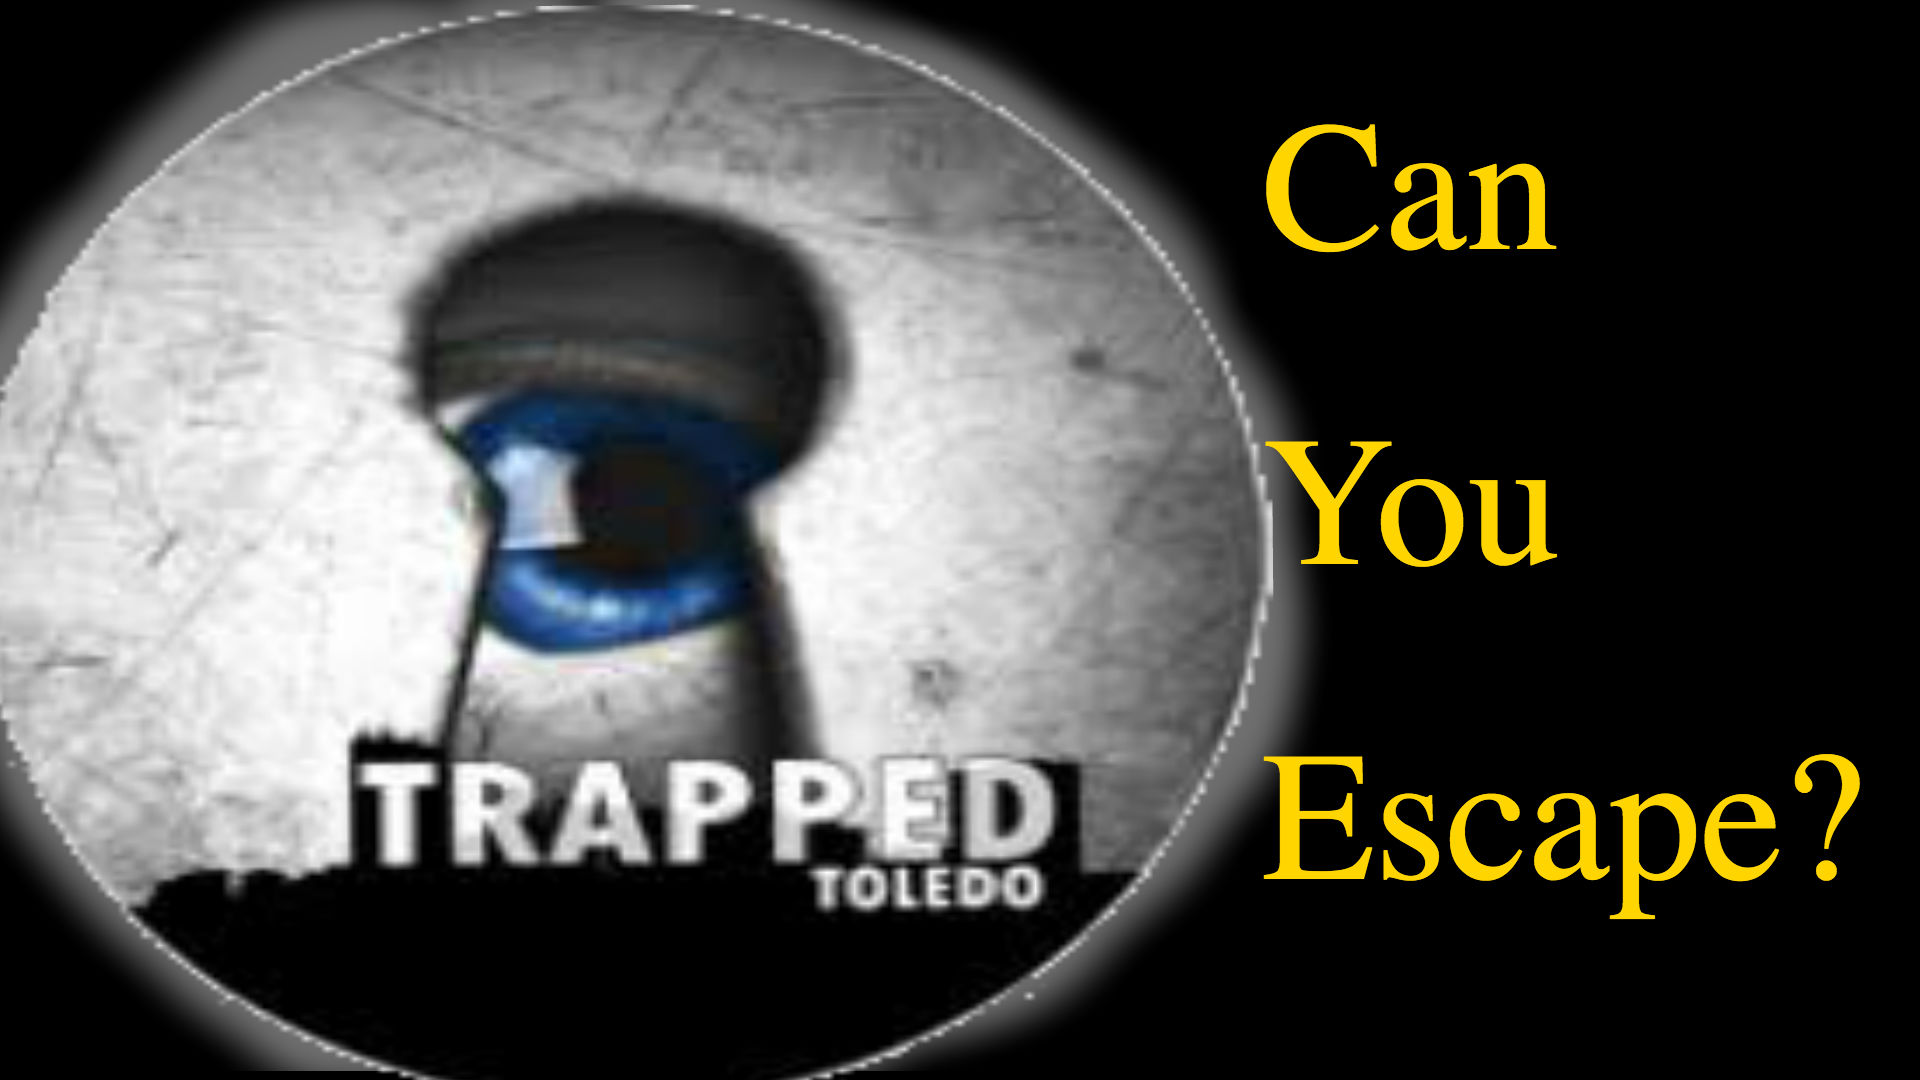 Trapped Toledo: Think You Can Escape?